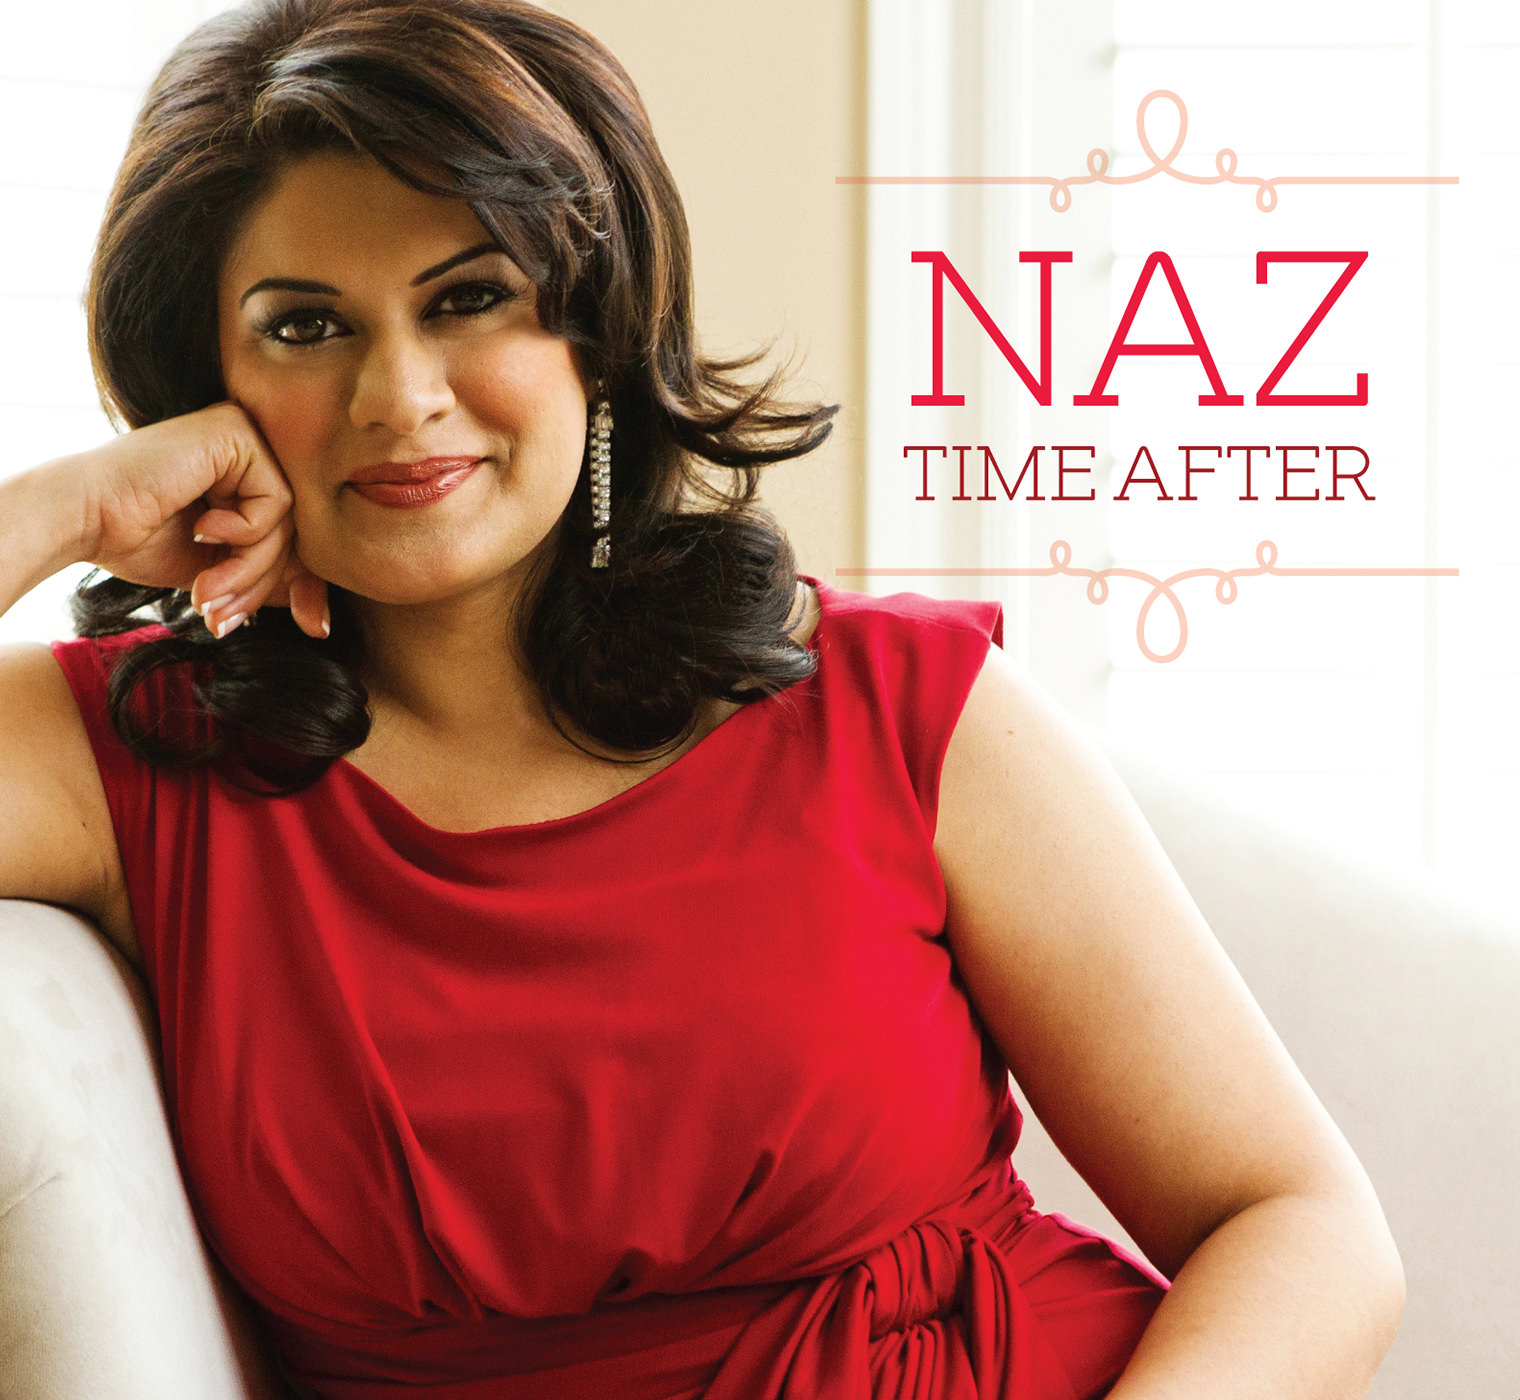 Naz | Time After